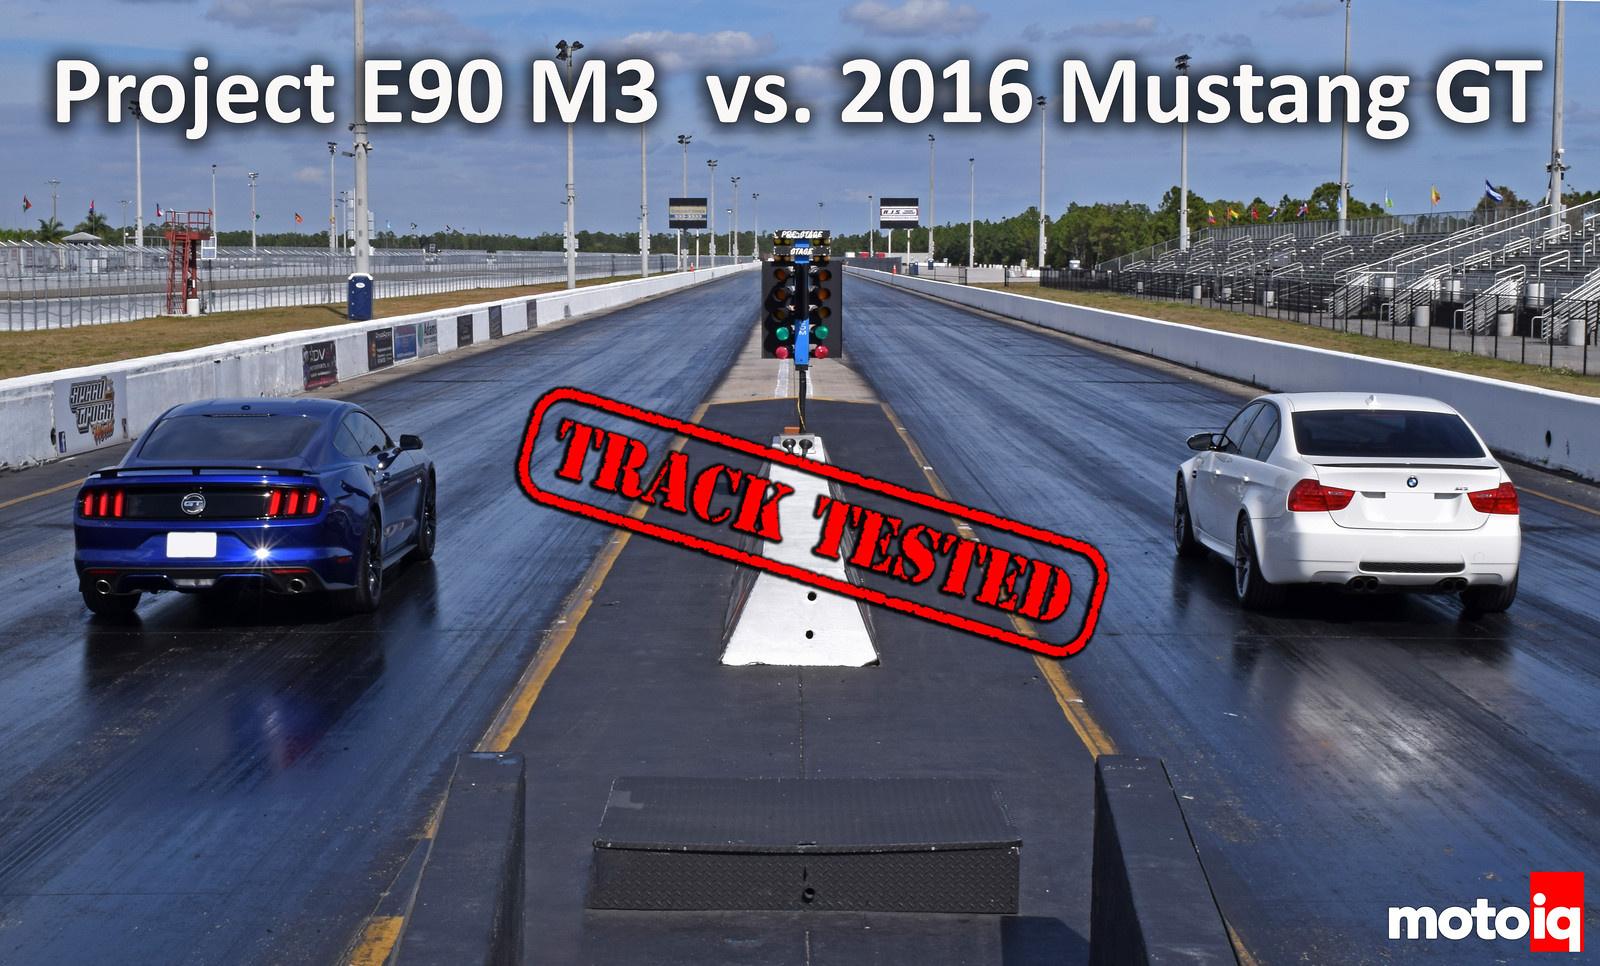 Preoject E90 M3 vs 2016 Mustang GT cover